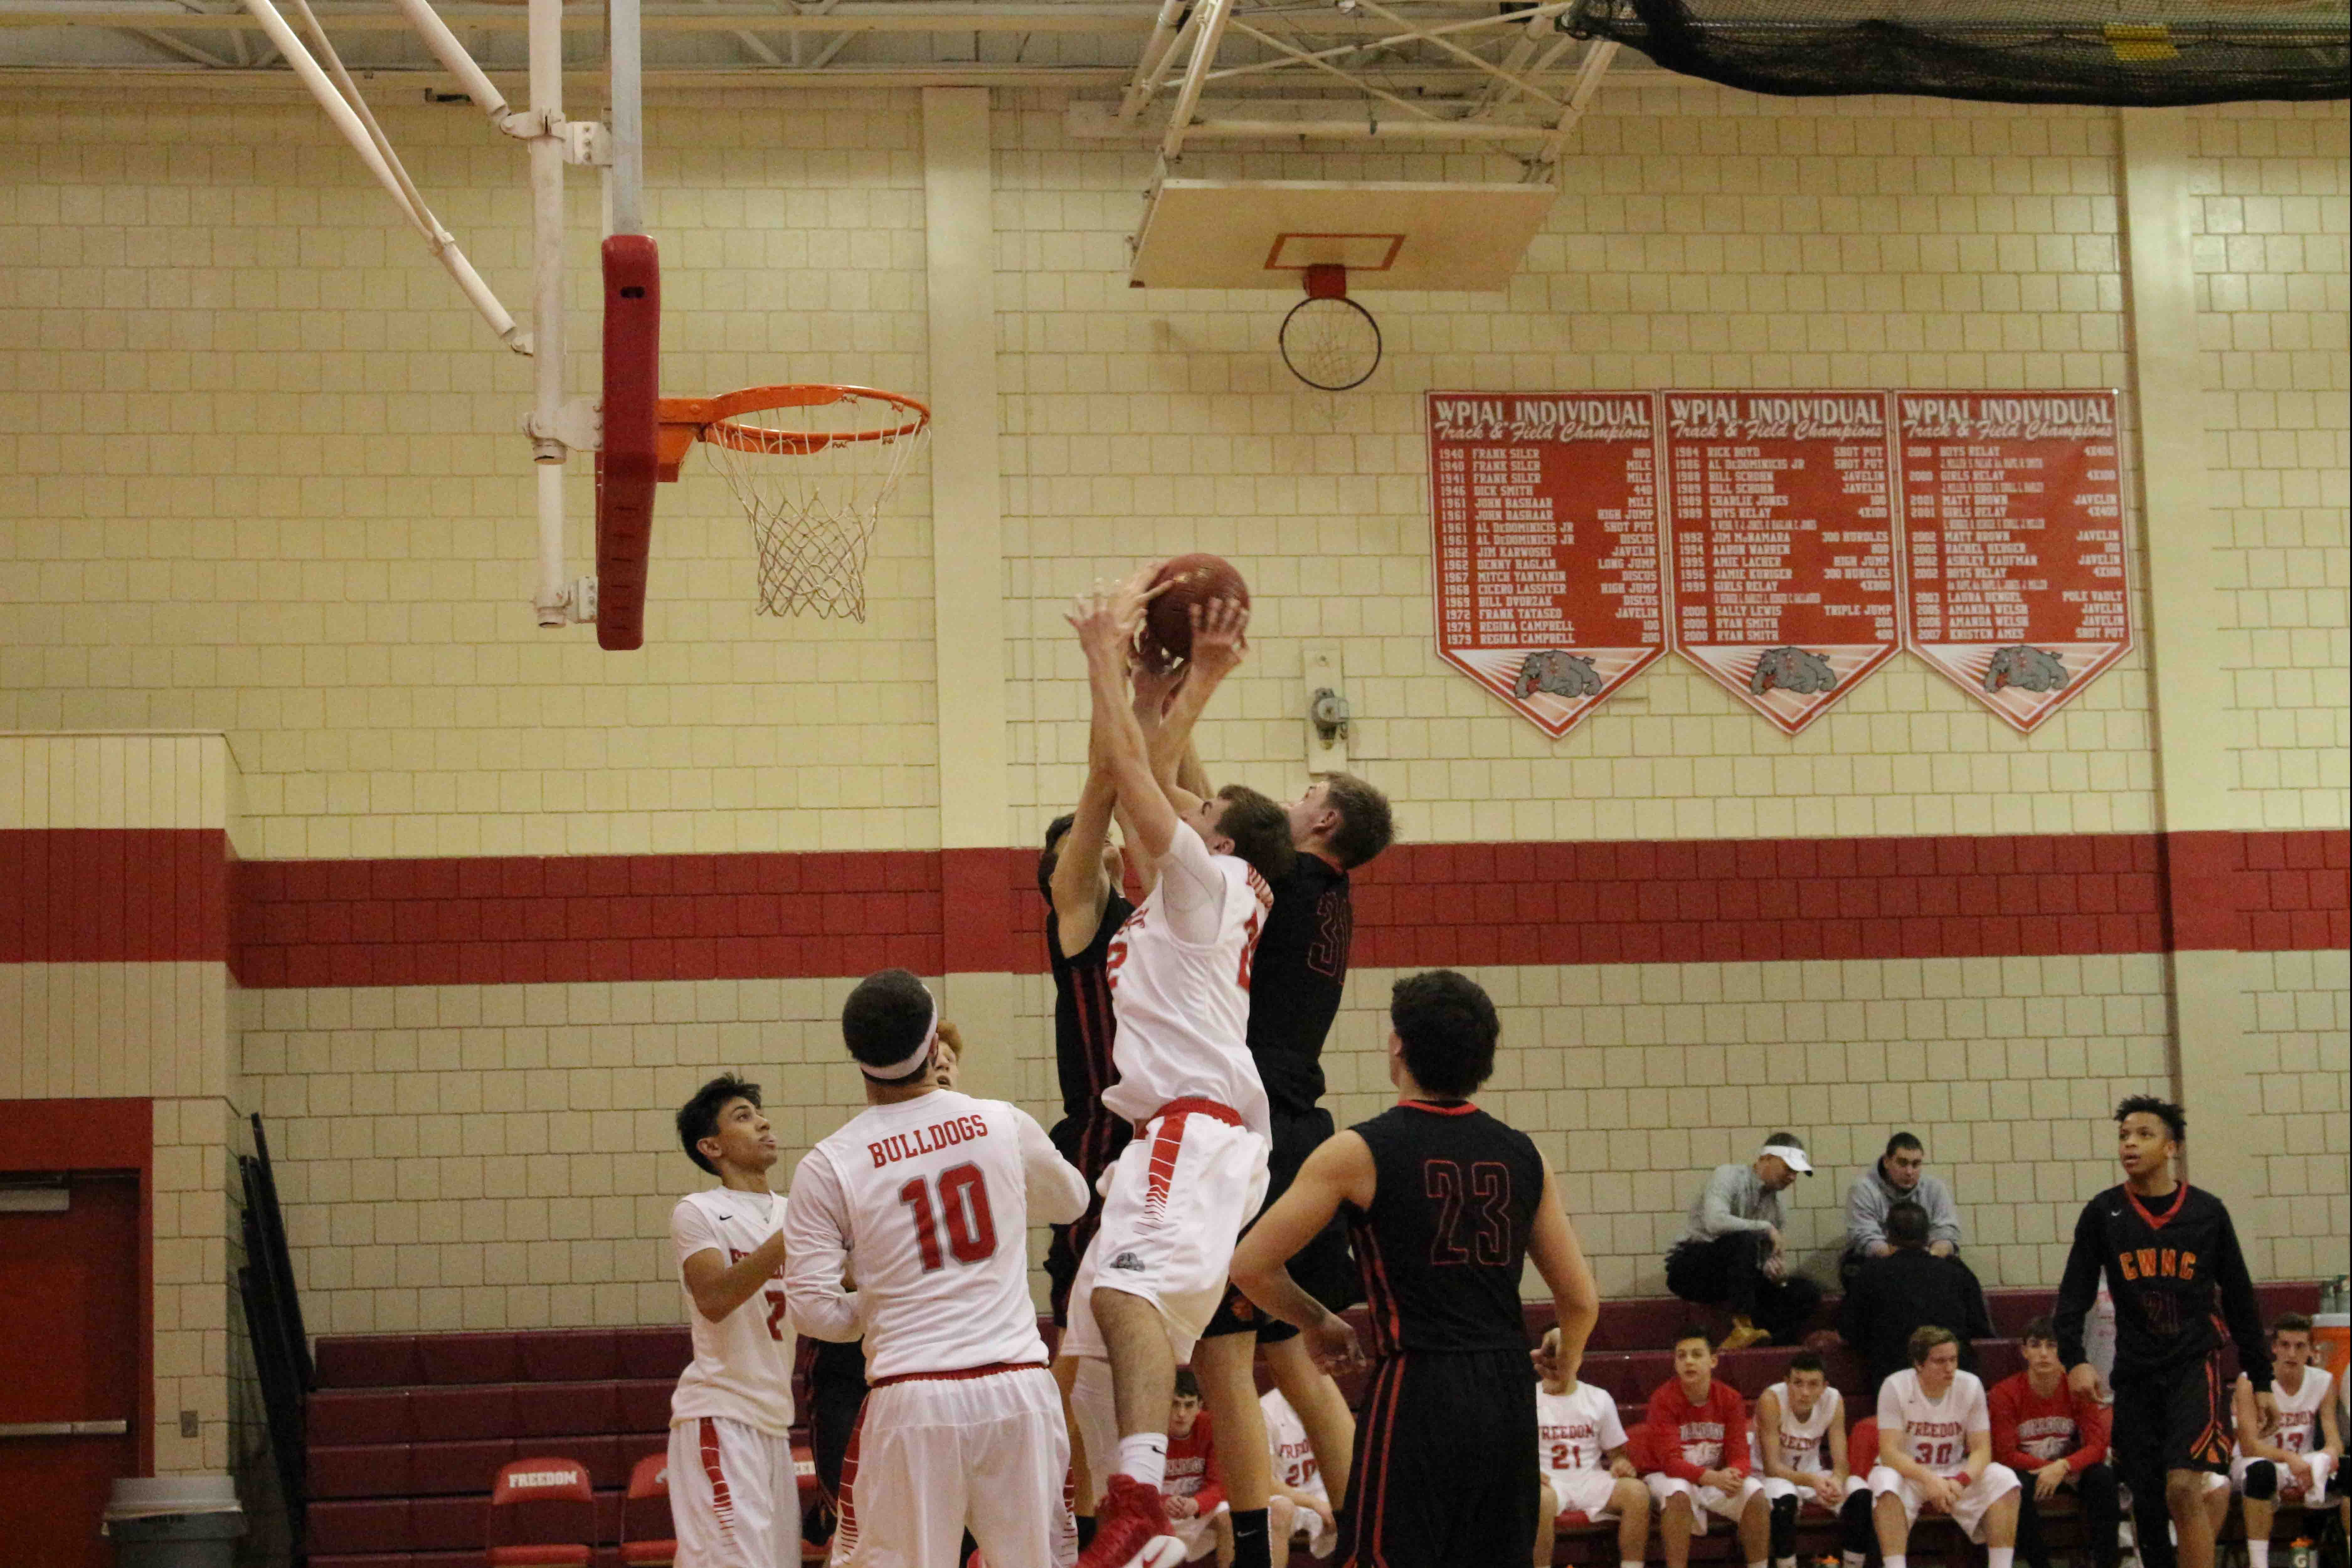 Senior Scotty Lazarus goes for a rebound against two of North Catholic's players.